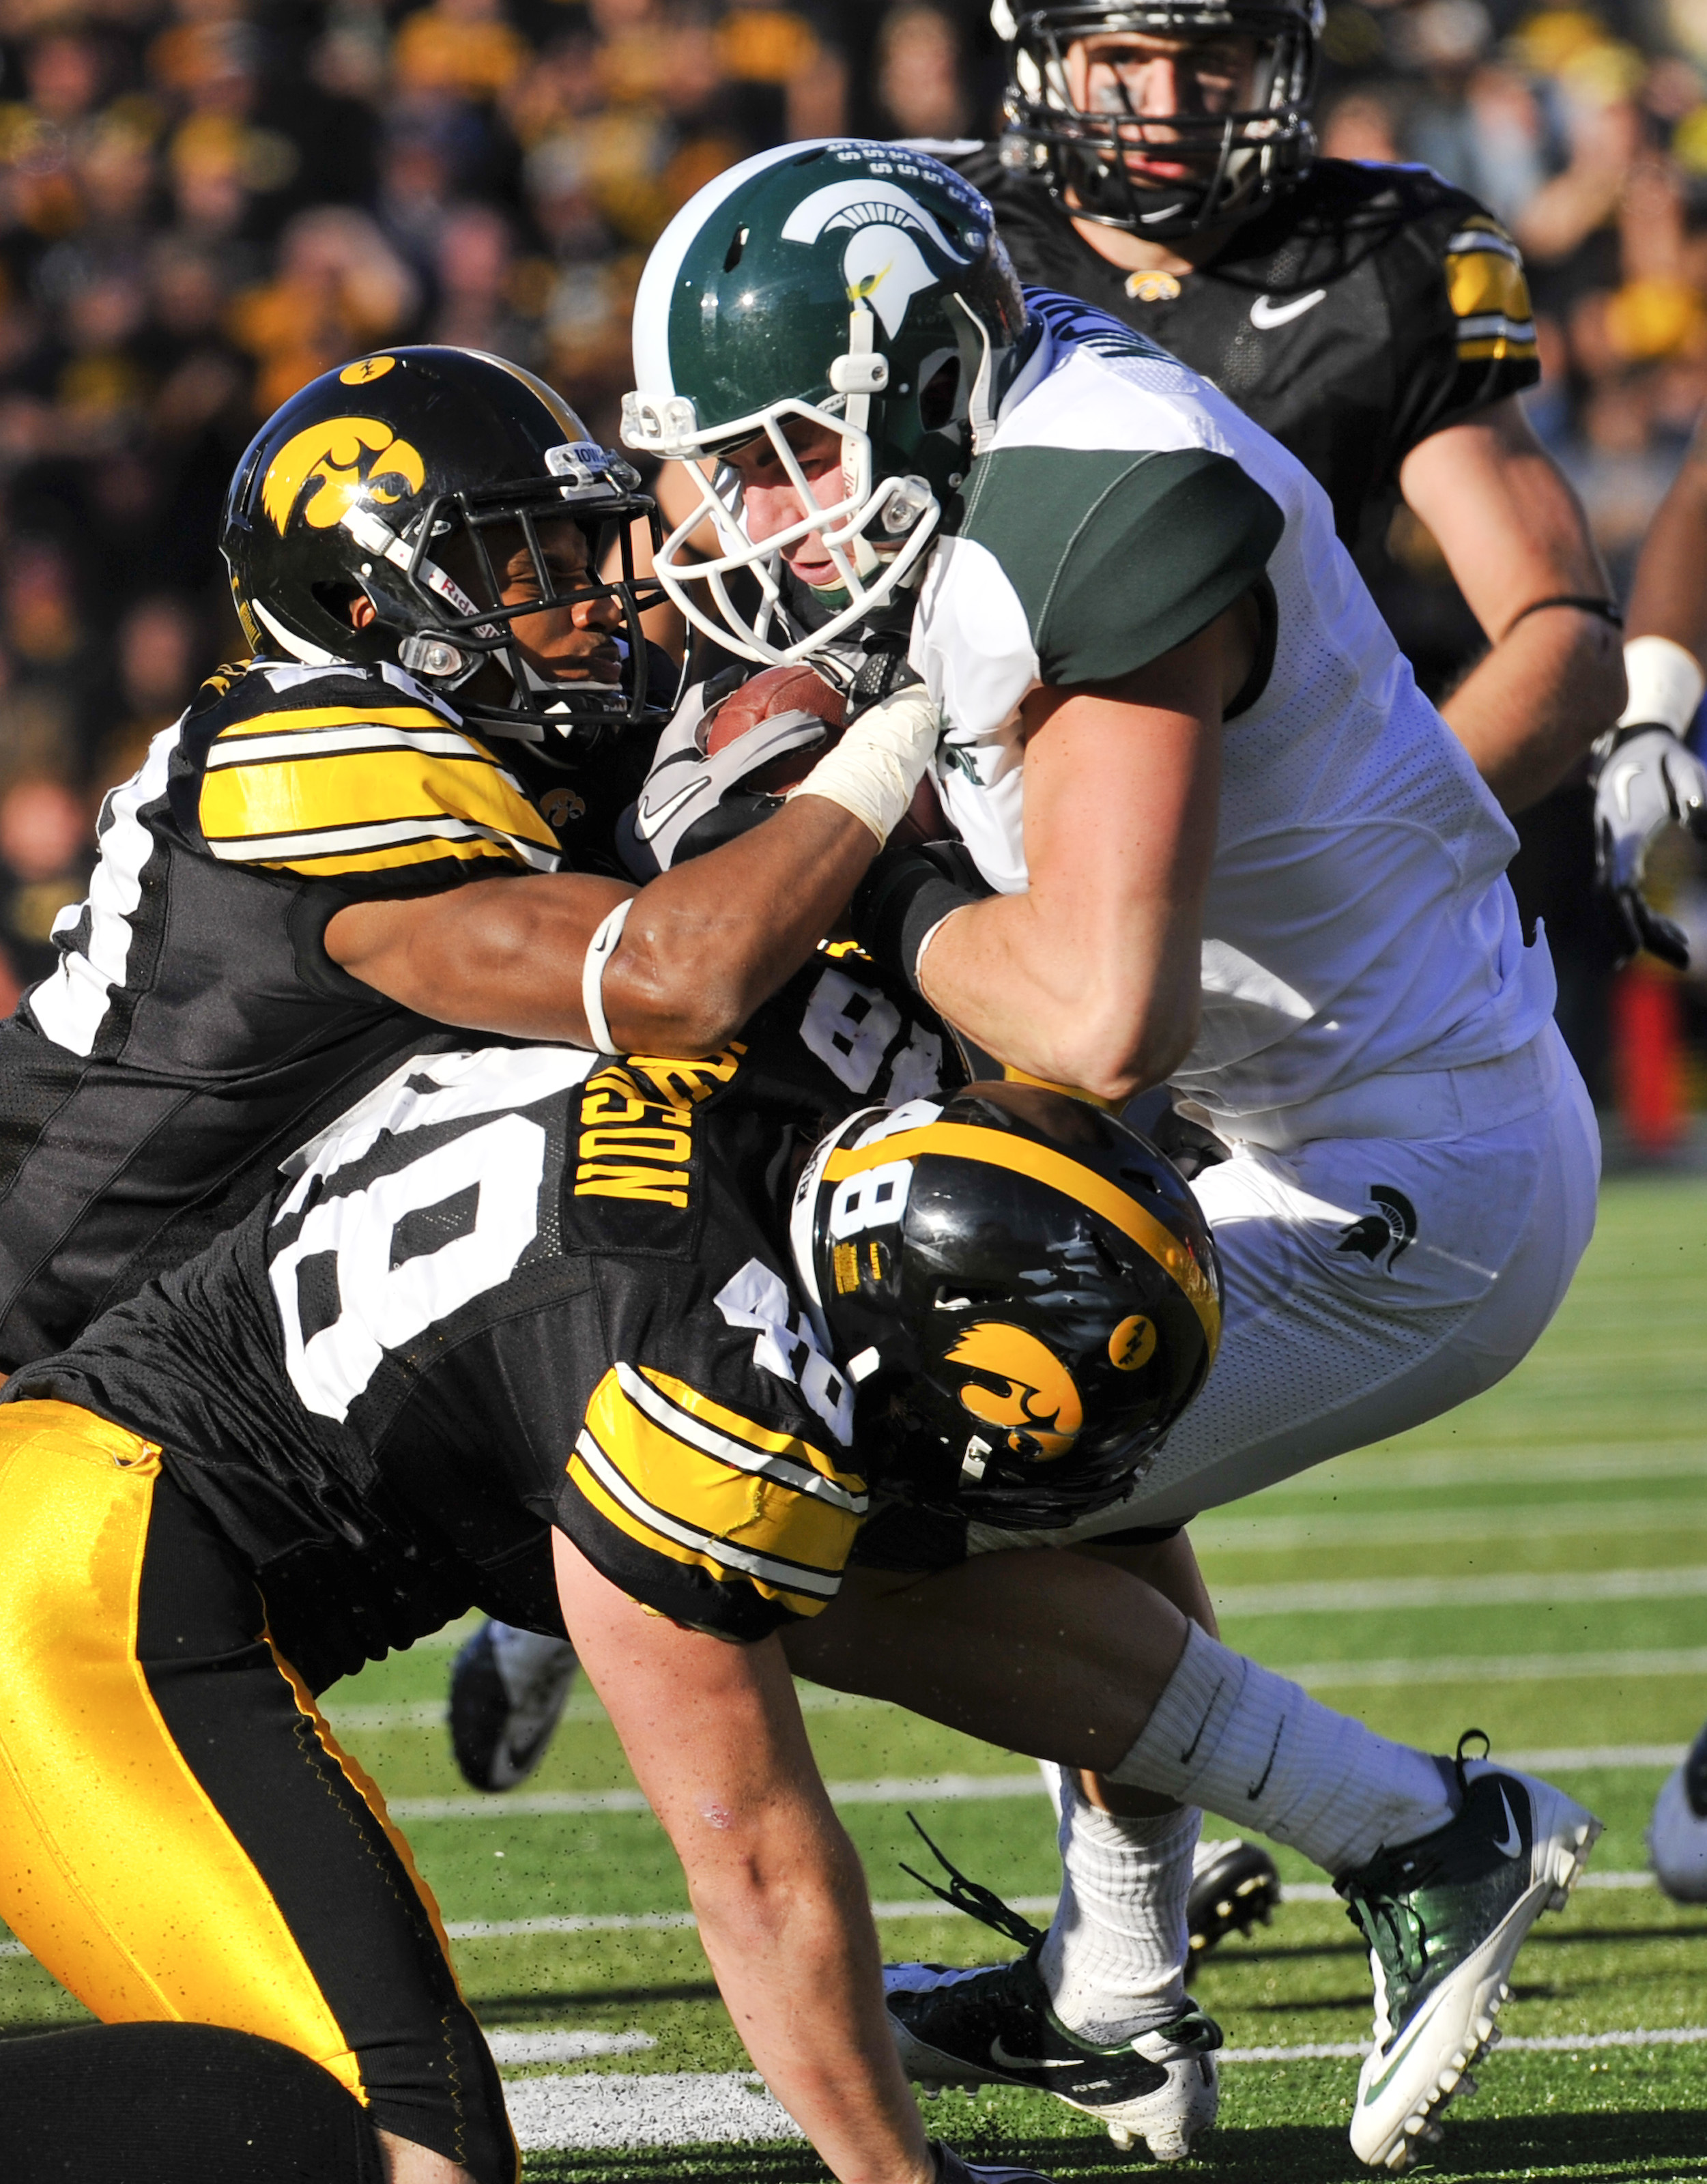 IOWA CITY, IA - OCTOBER 30: Line backer Troy Johnson #48 and defensive back Shaun Prater #28 of the University of Iowa Hawkeyes tackle wide receiver Keith Nichol #7 of the Michigan State Spartans during the first half of play at Kinnick Stadium on October